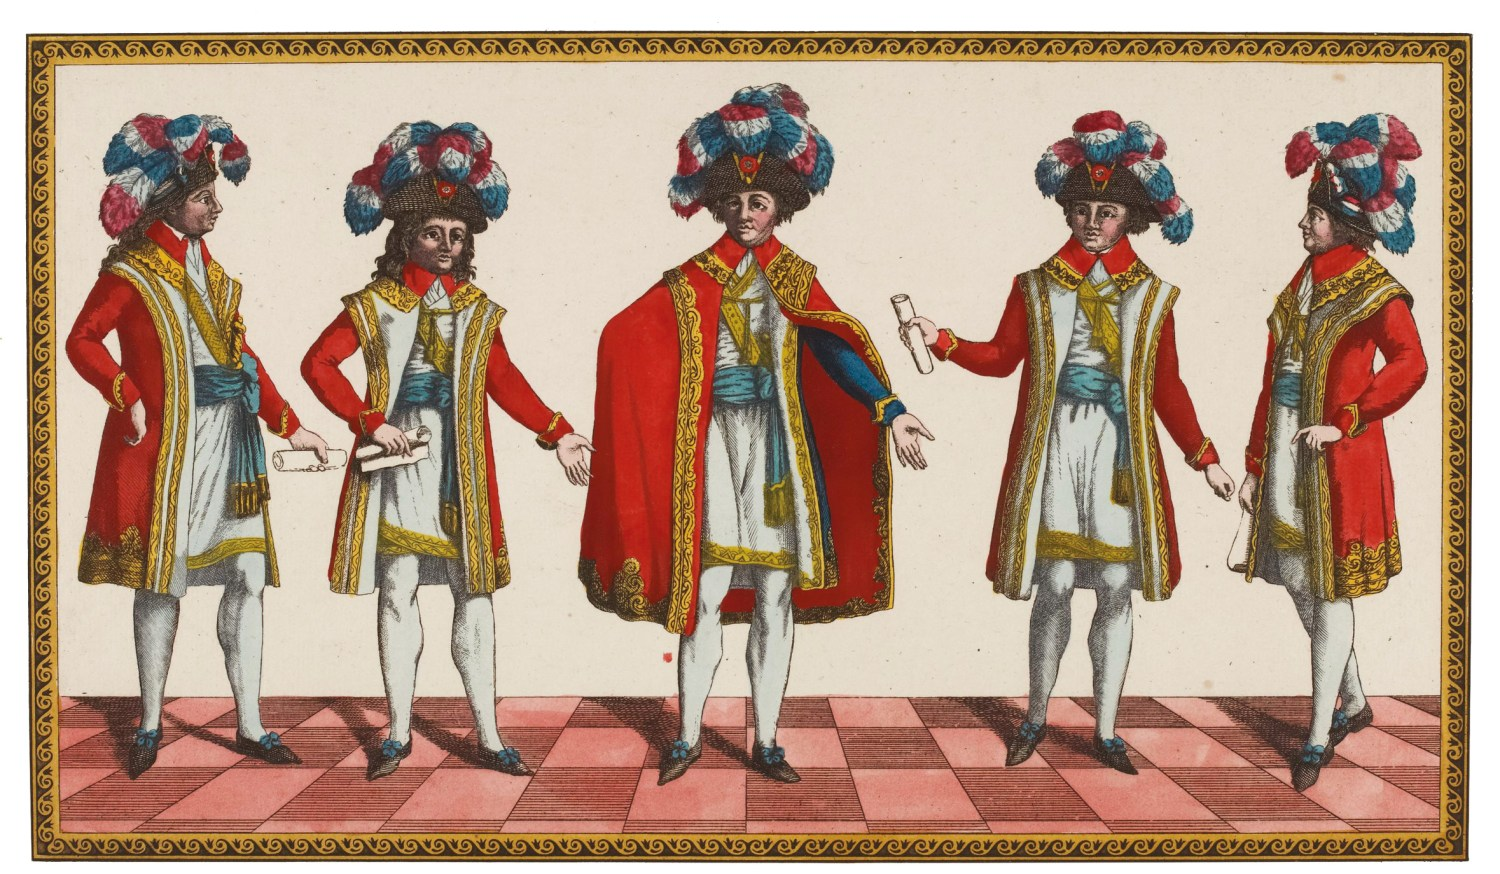 BELOW The French Directory, the executive of five men who ruled France at the time of the 1797 invasion effort.